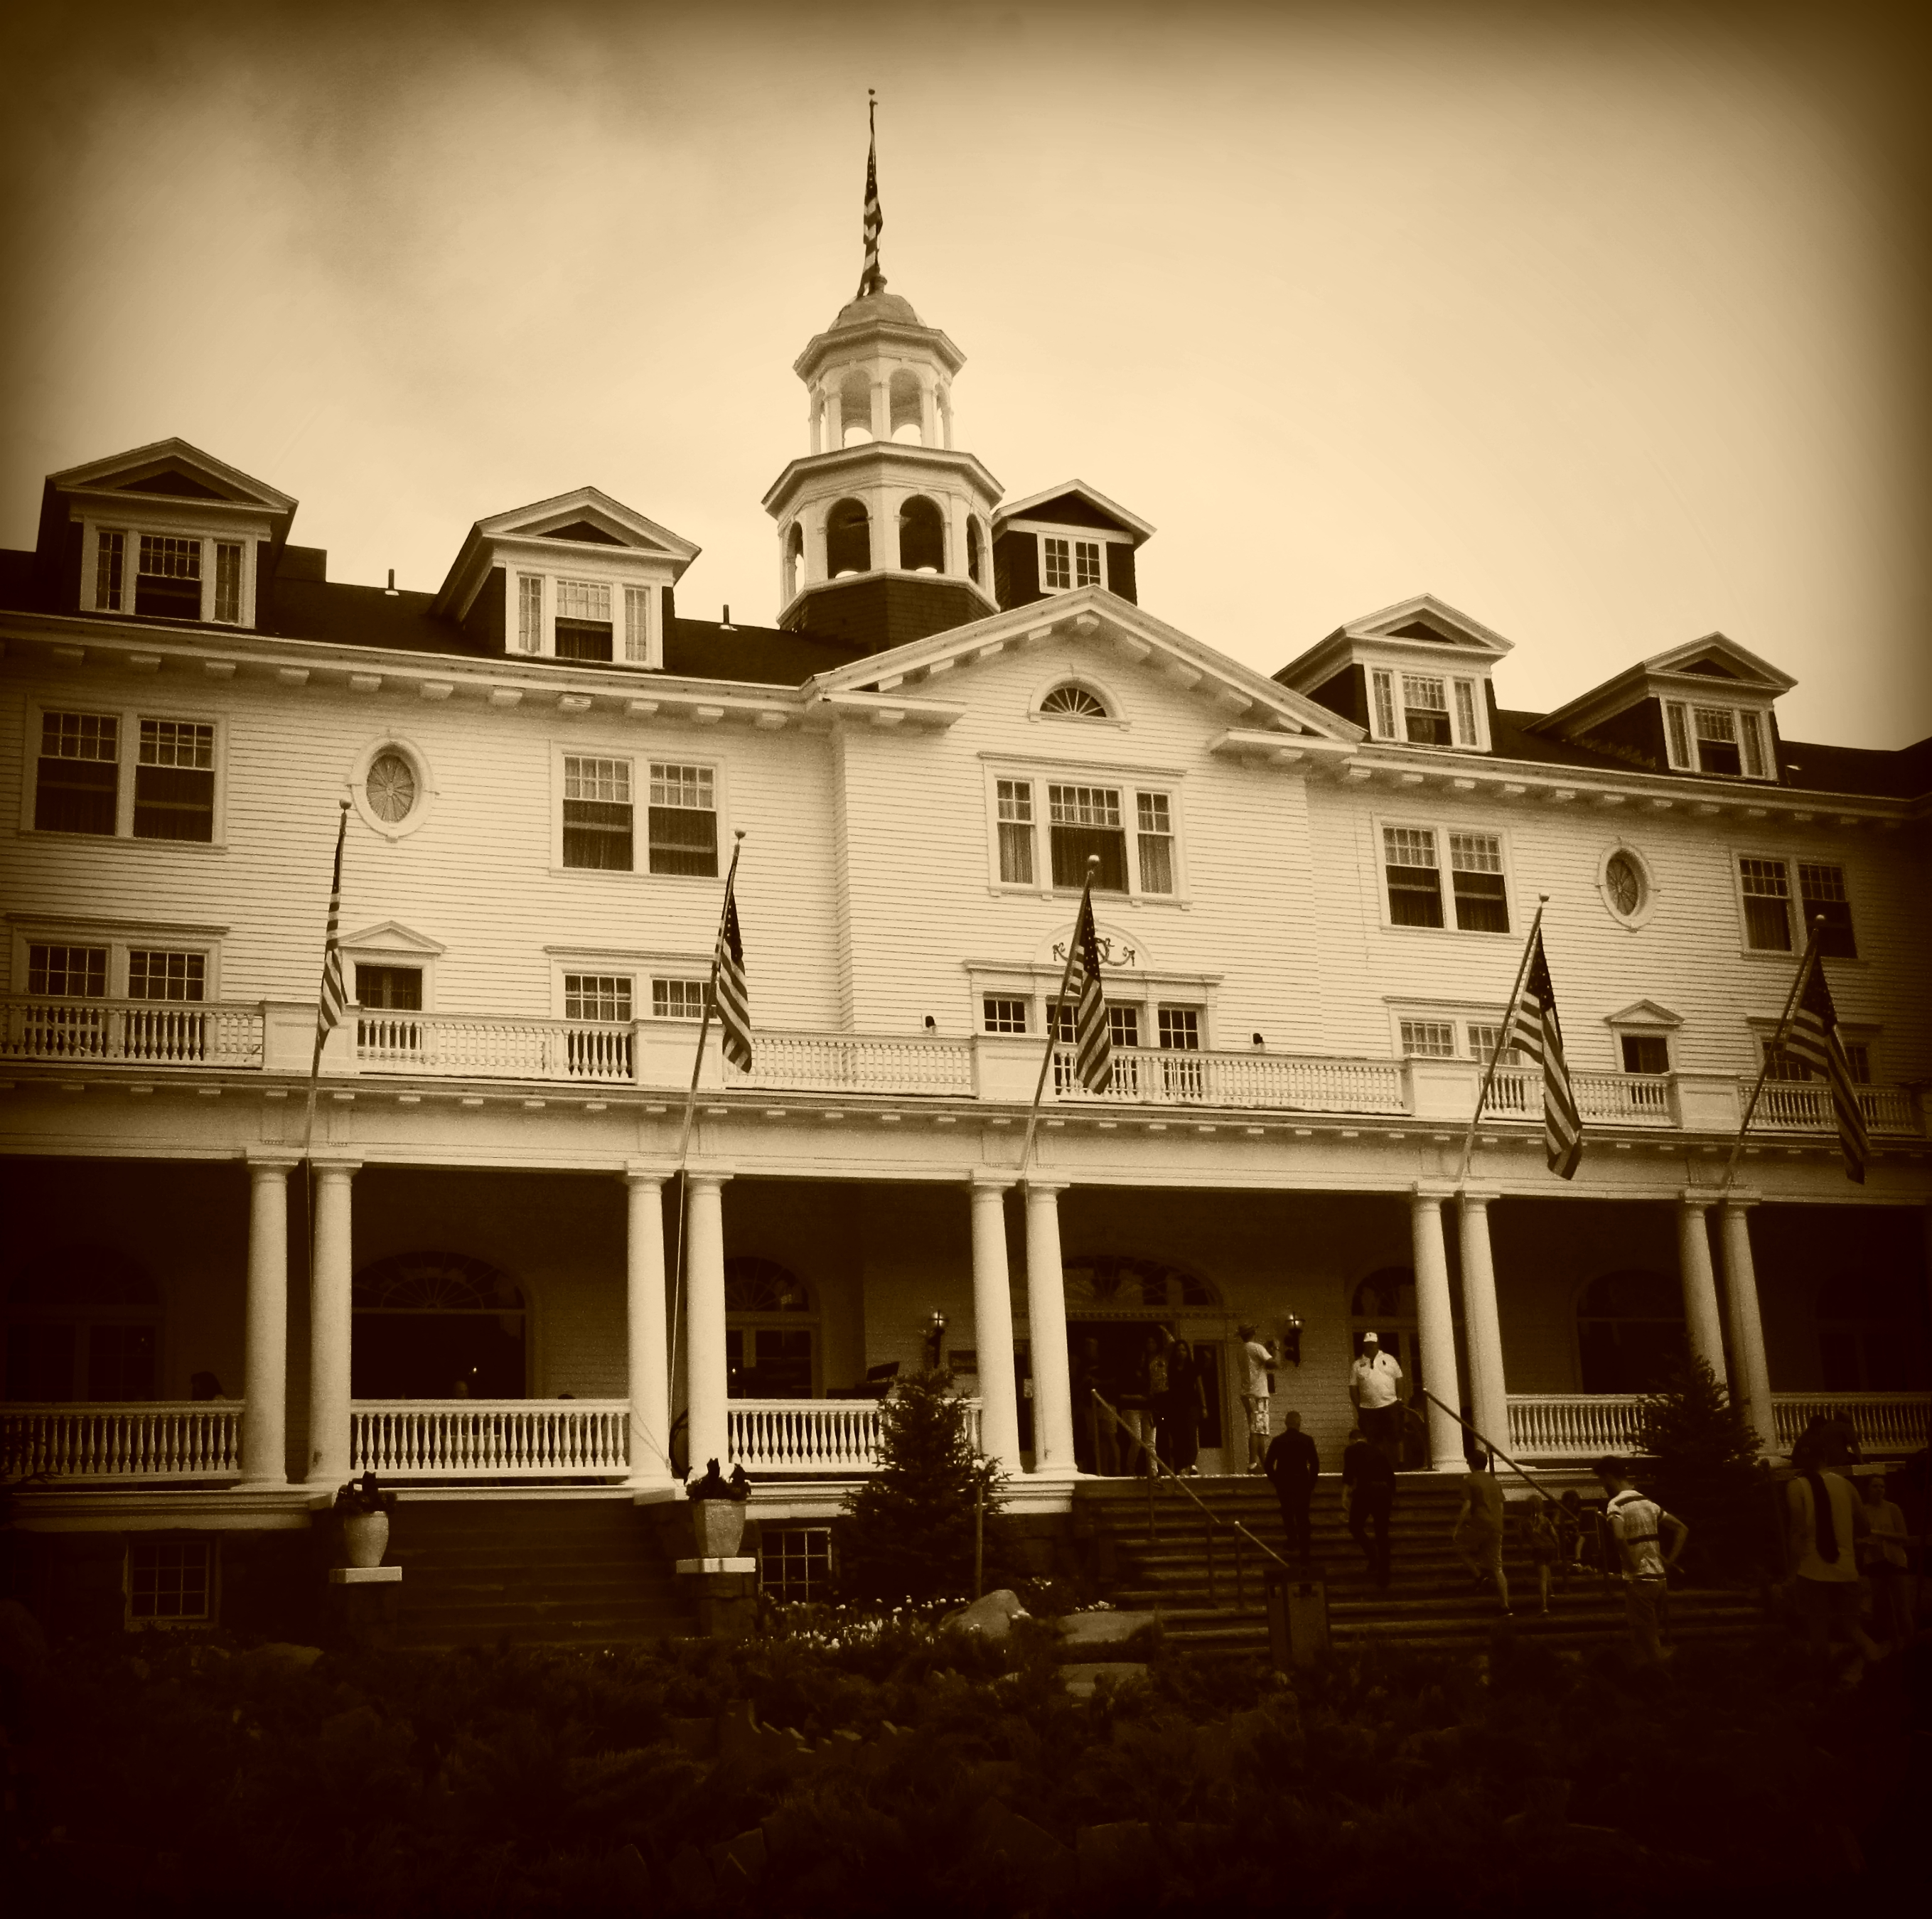 Stanley Hotel Ghost Photographed At Hotel That Inspired: Frightening Facts About The Twilight Zone Tower Of Terror